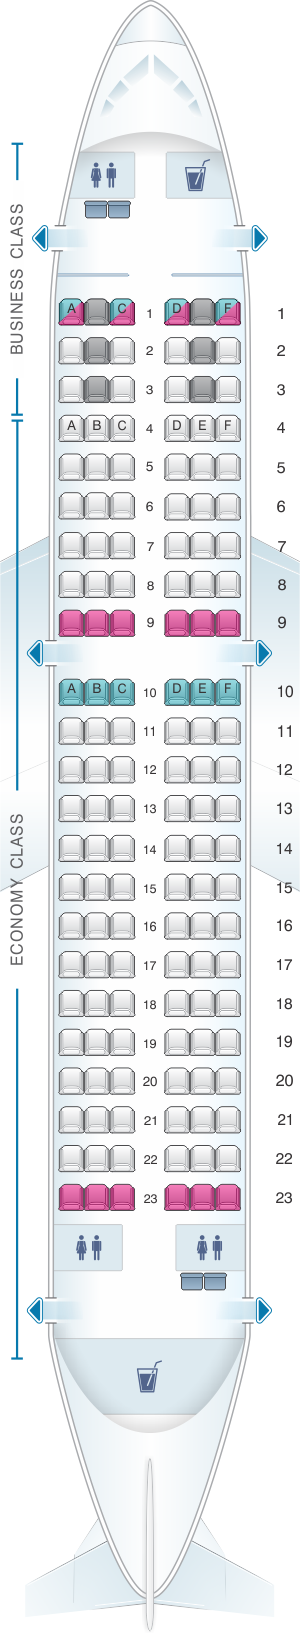 Seat map for Rossiya Airlines Airbus A319 132PAX